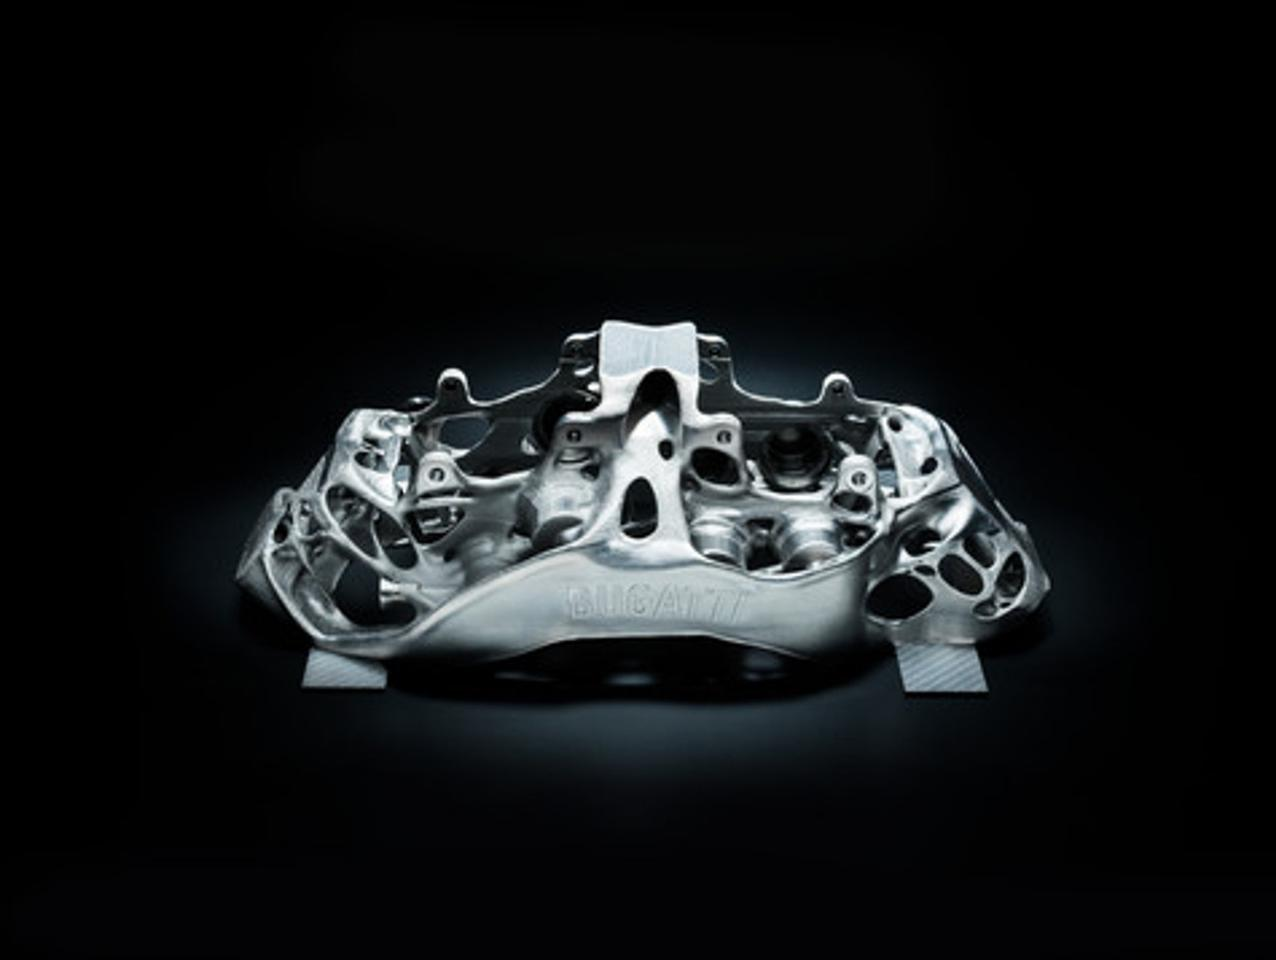 This eight-piston monobloc brake caliper developed by Bugatti is the world's first brake caliper to be produced by 3-D printer